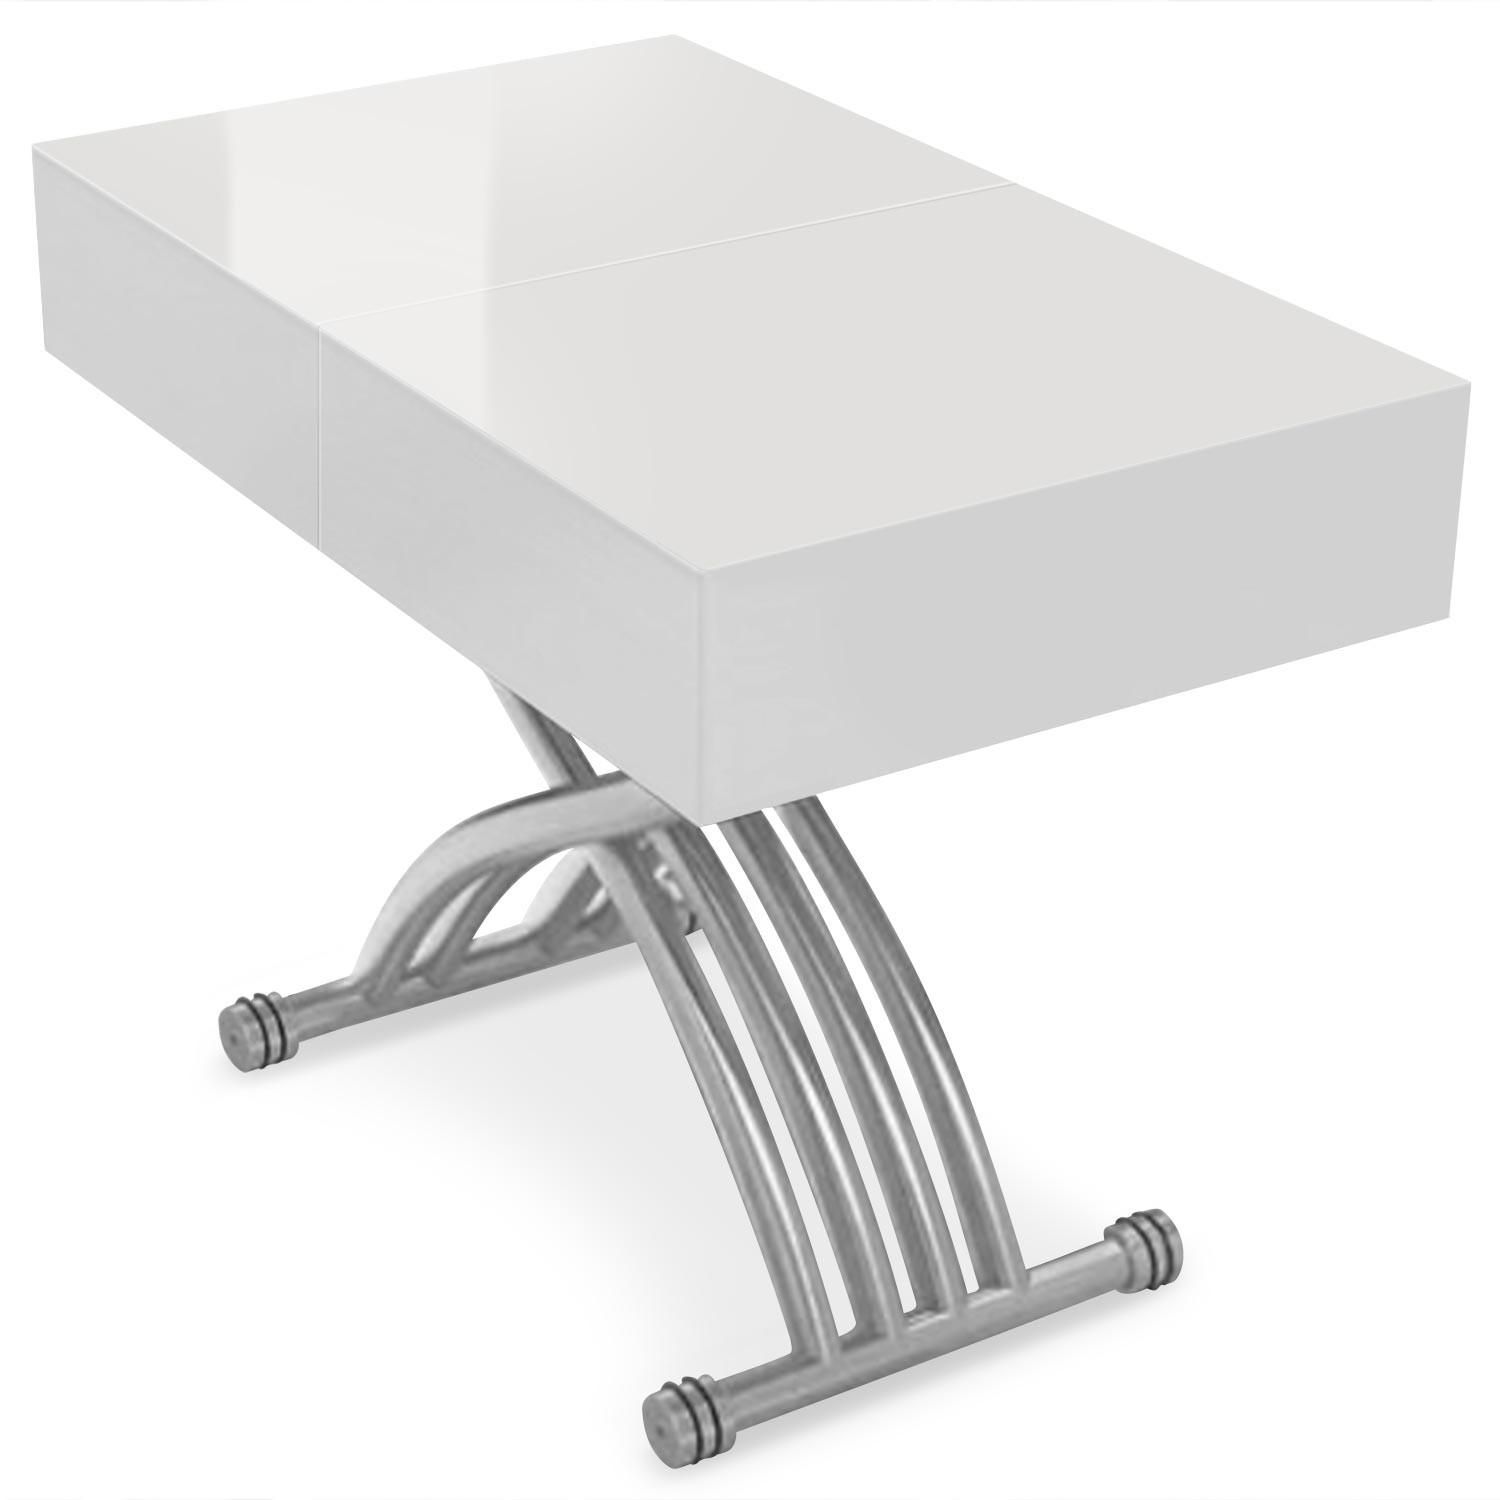 Table Basse Relevable Blanc Laqué Table Basse Relevable Et Extensible Jil Blanc Laqué Pieds Argent